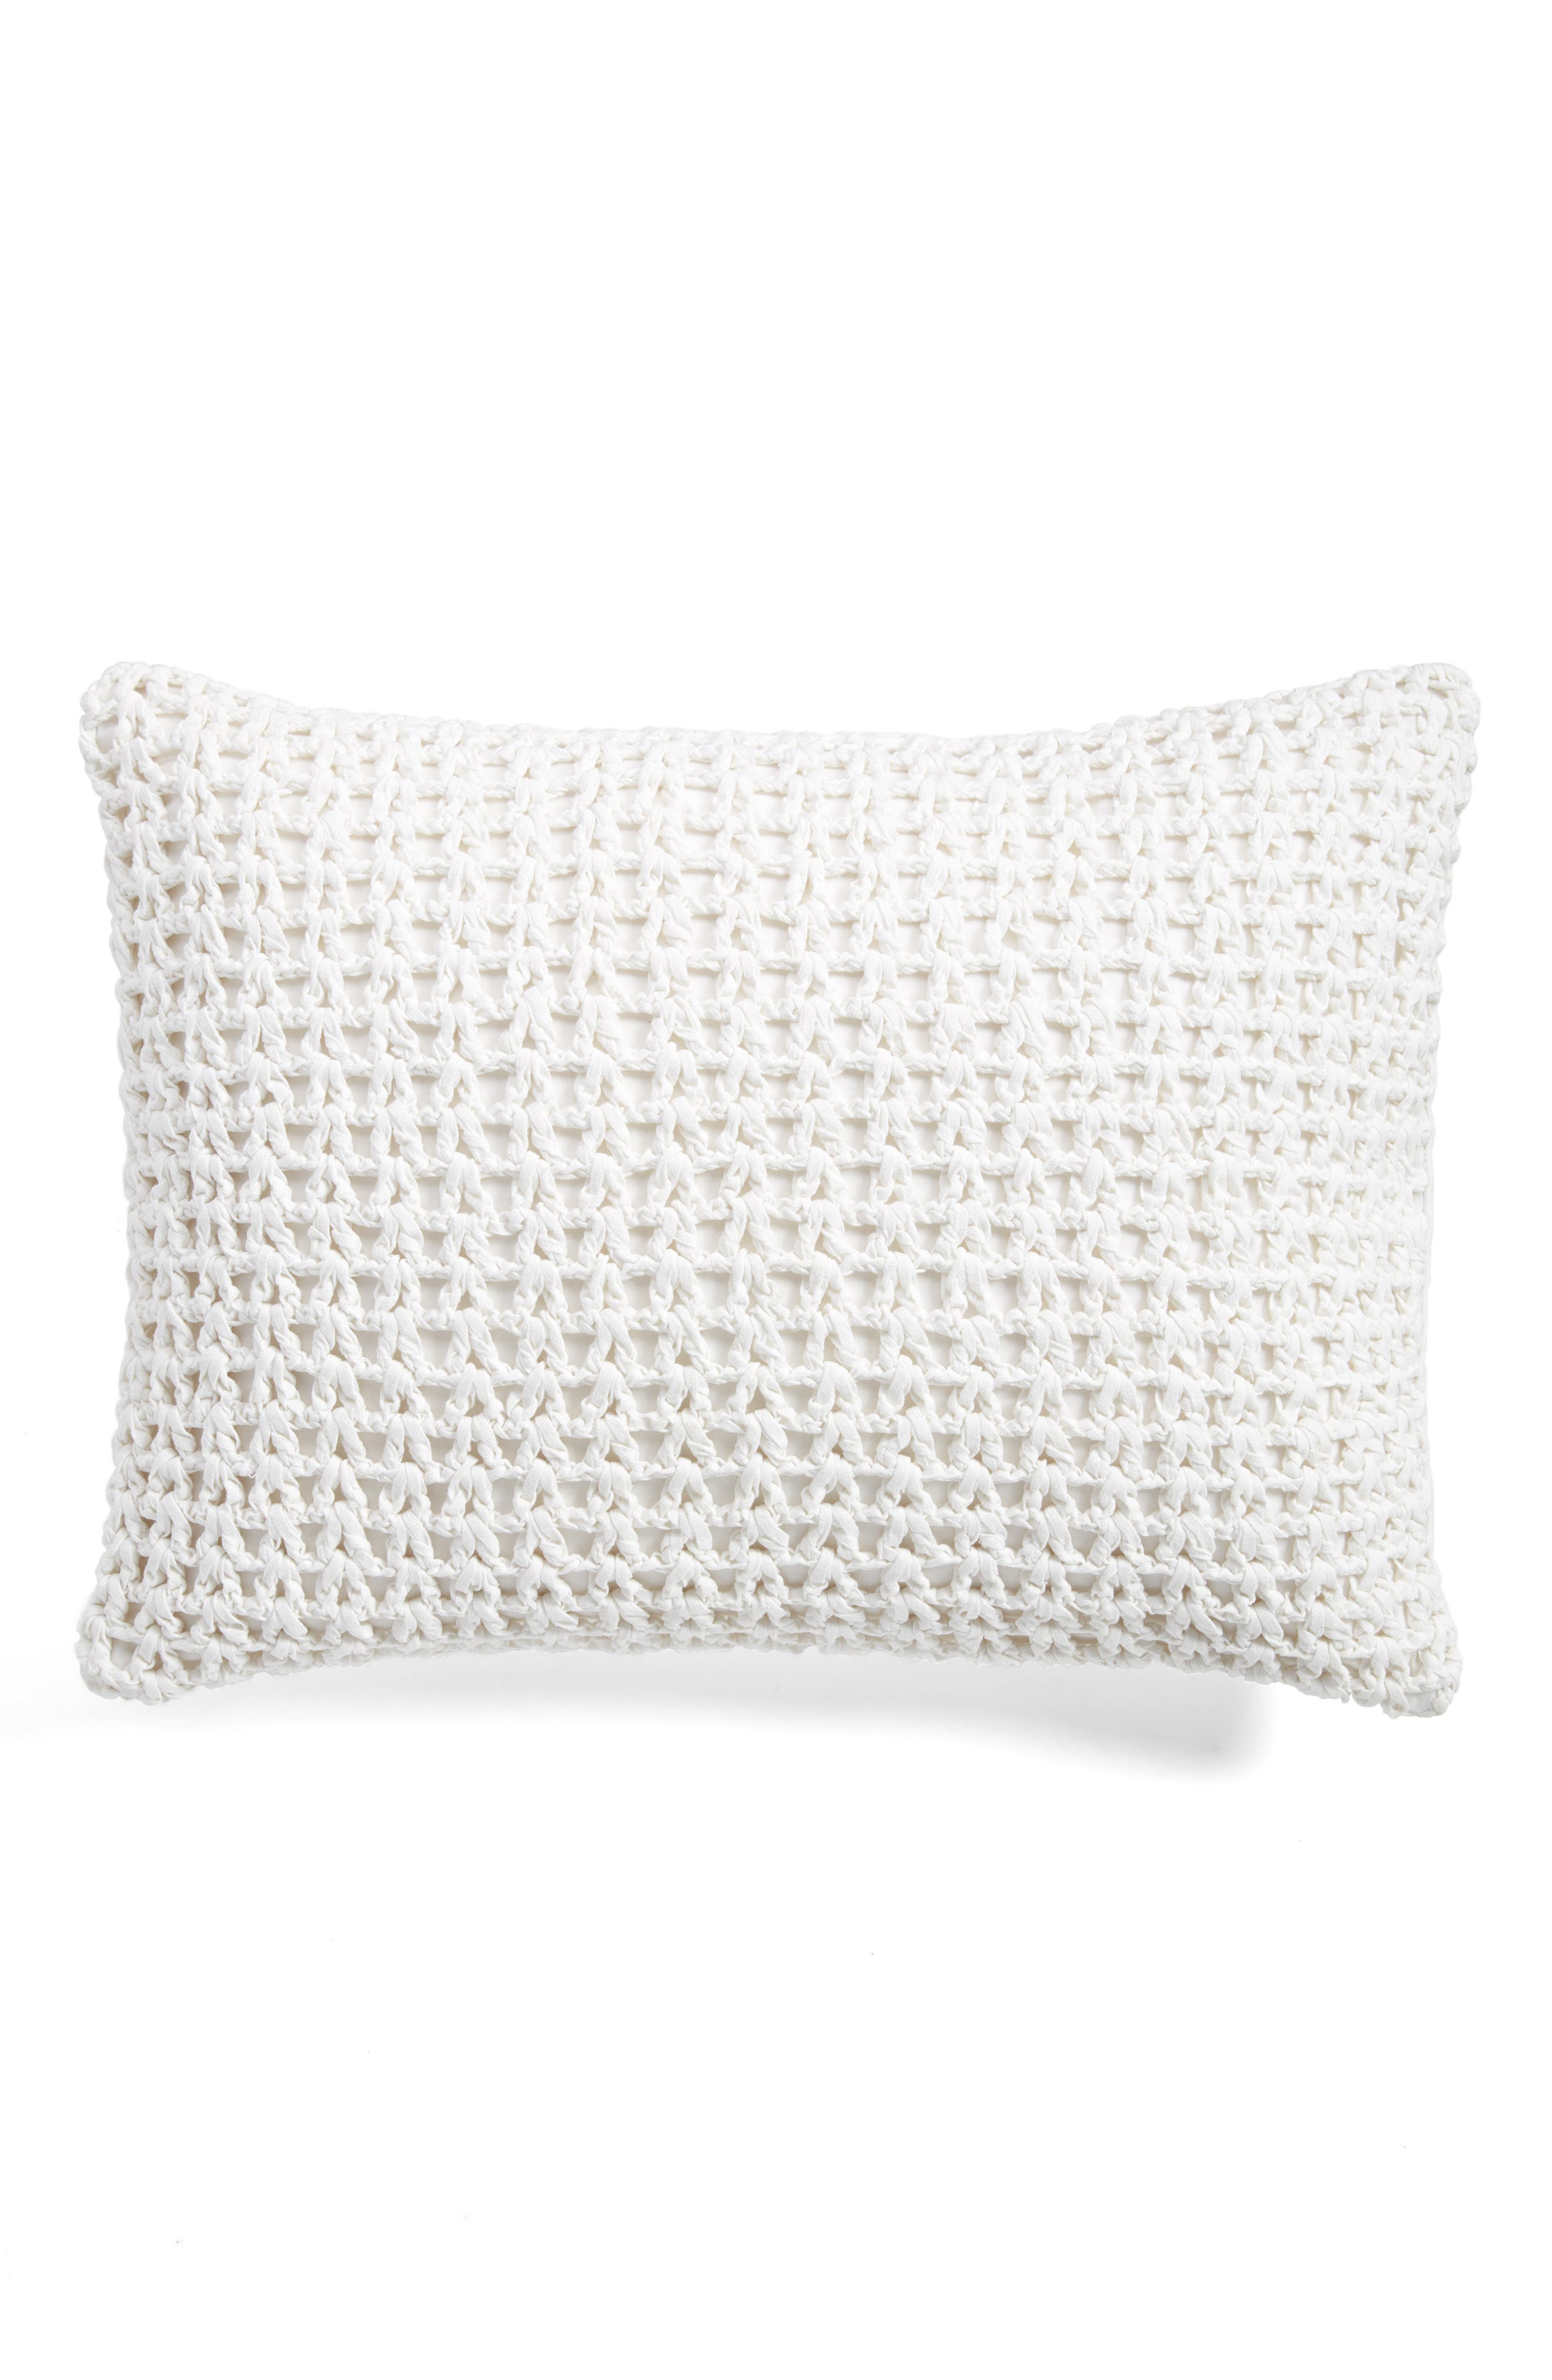 Lux Marble Shibori Breakfast Accent Pillow,                             Main thumbnail 1, color,